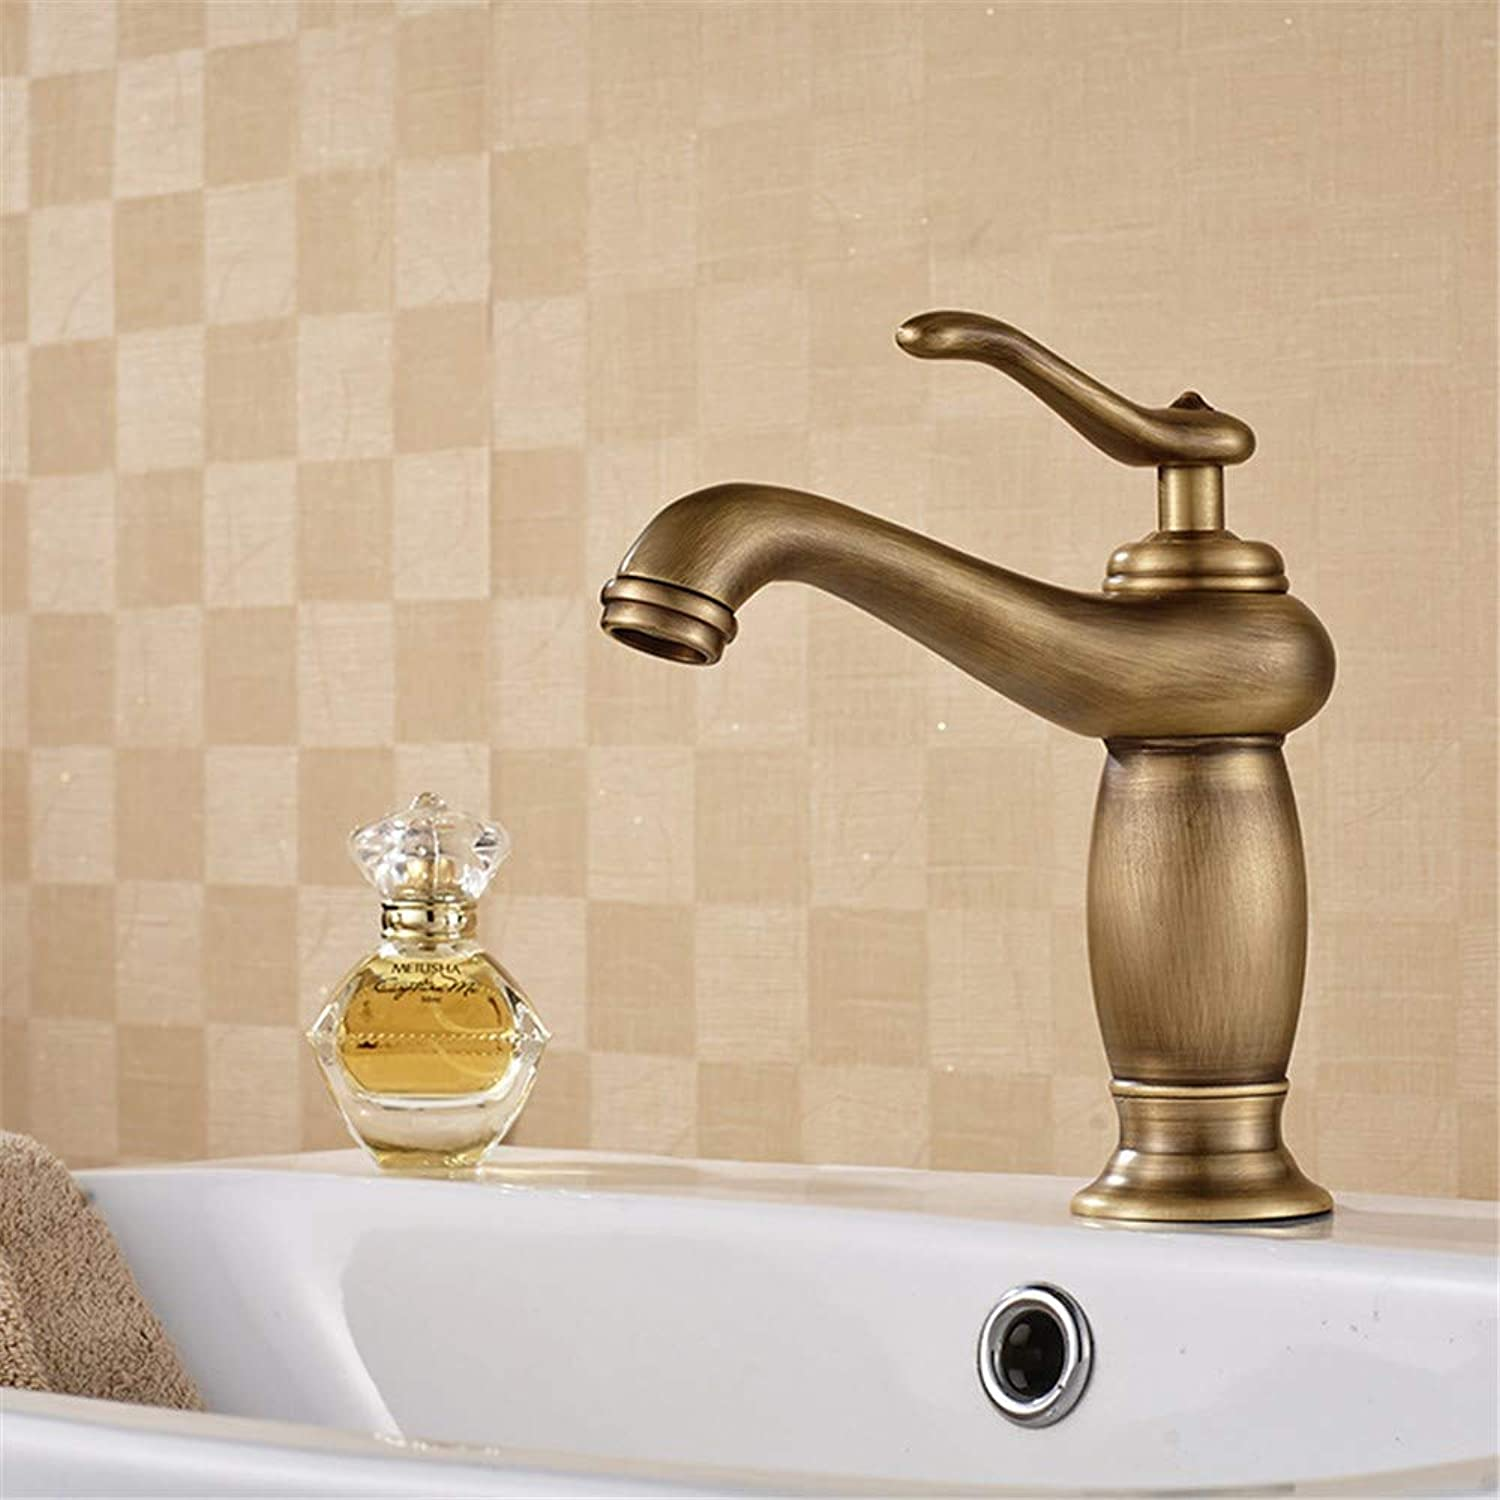 Zhcmy ?Copper Hot And Cold Basin Mixer Faucet gold Above Counter Basin Faucet European Style